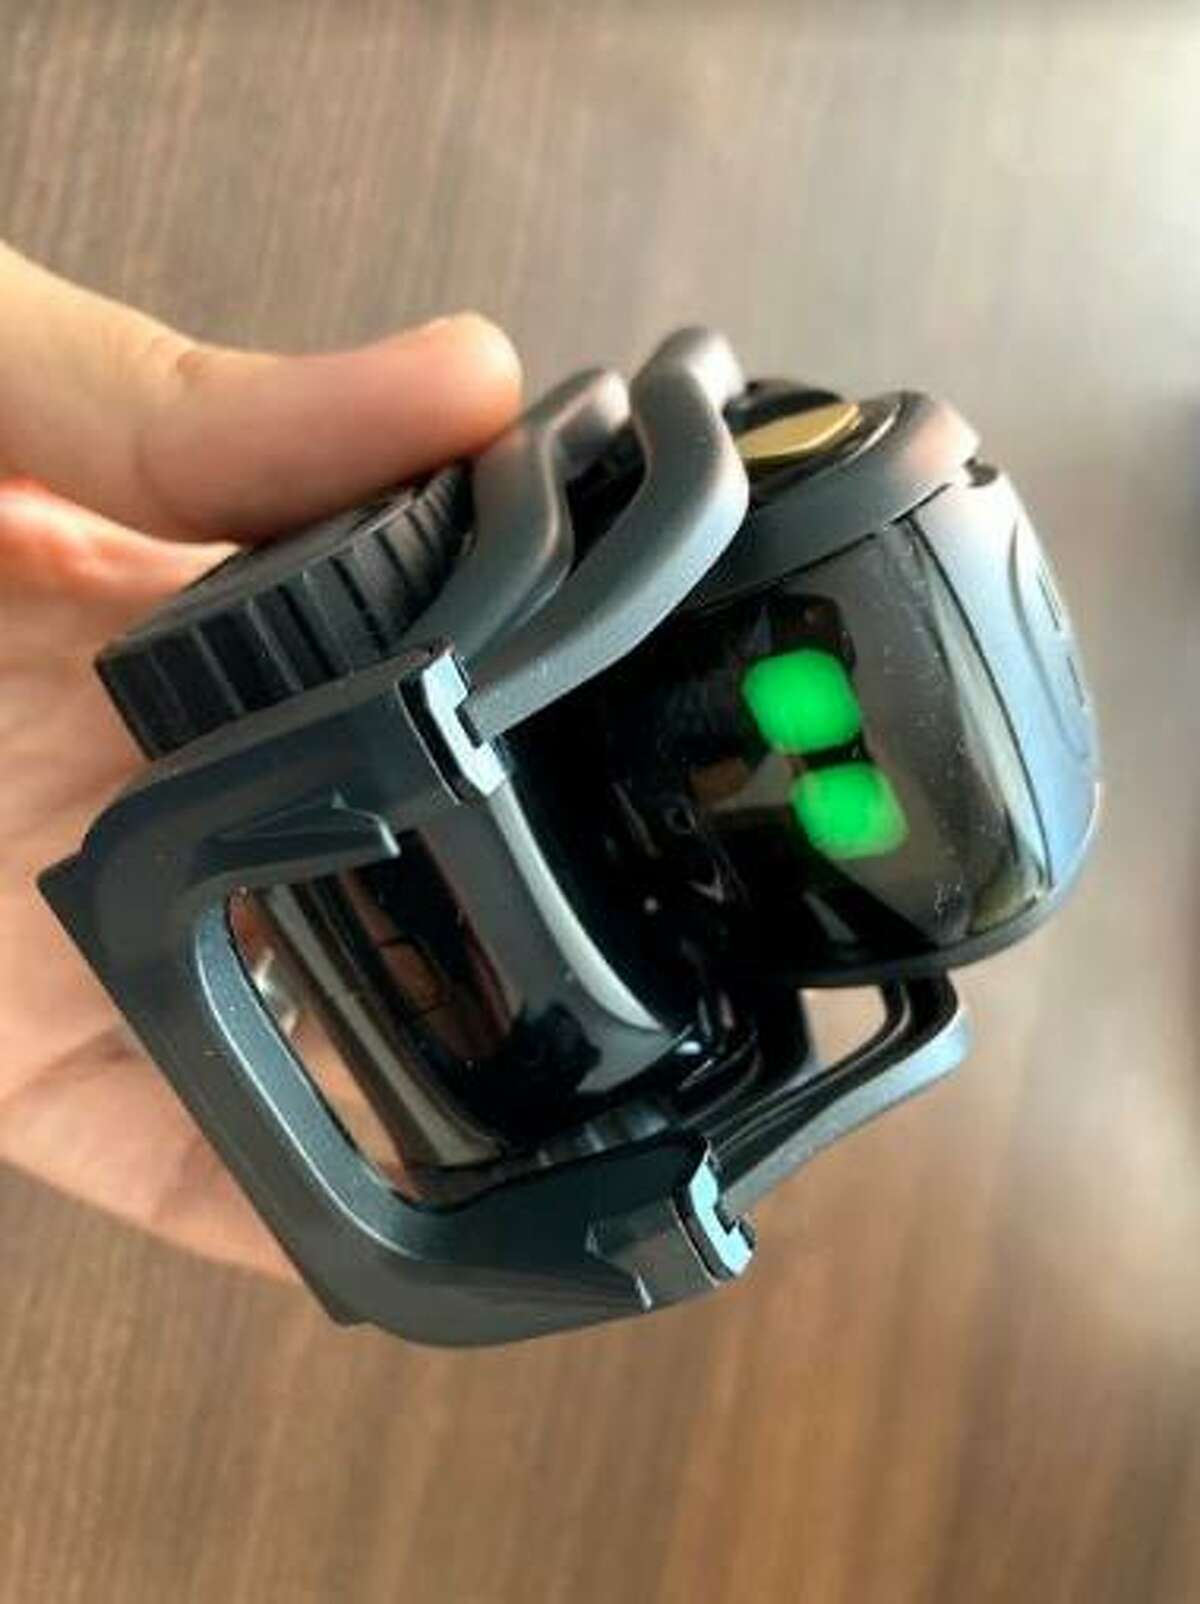 Vector, a toy robot, can be played with by two children in different homes by using an app designed by Yale University computer science students.